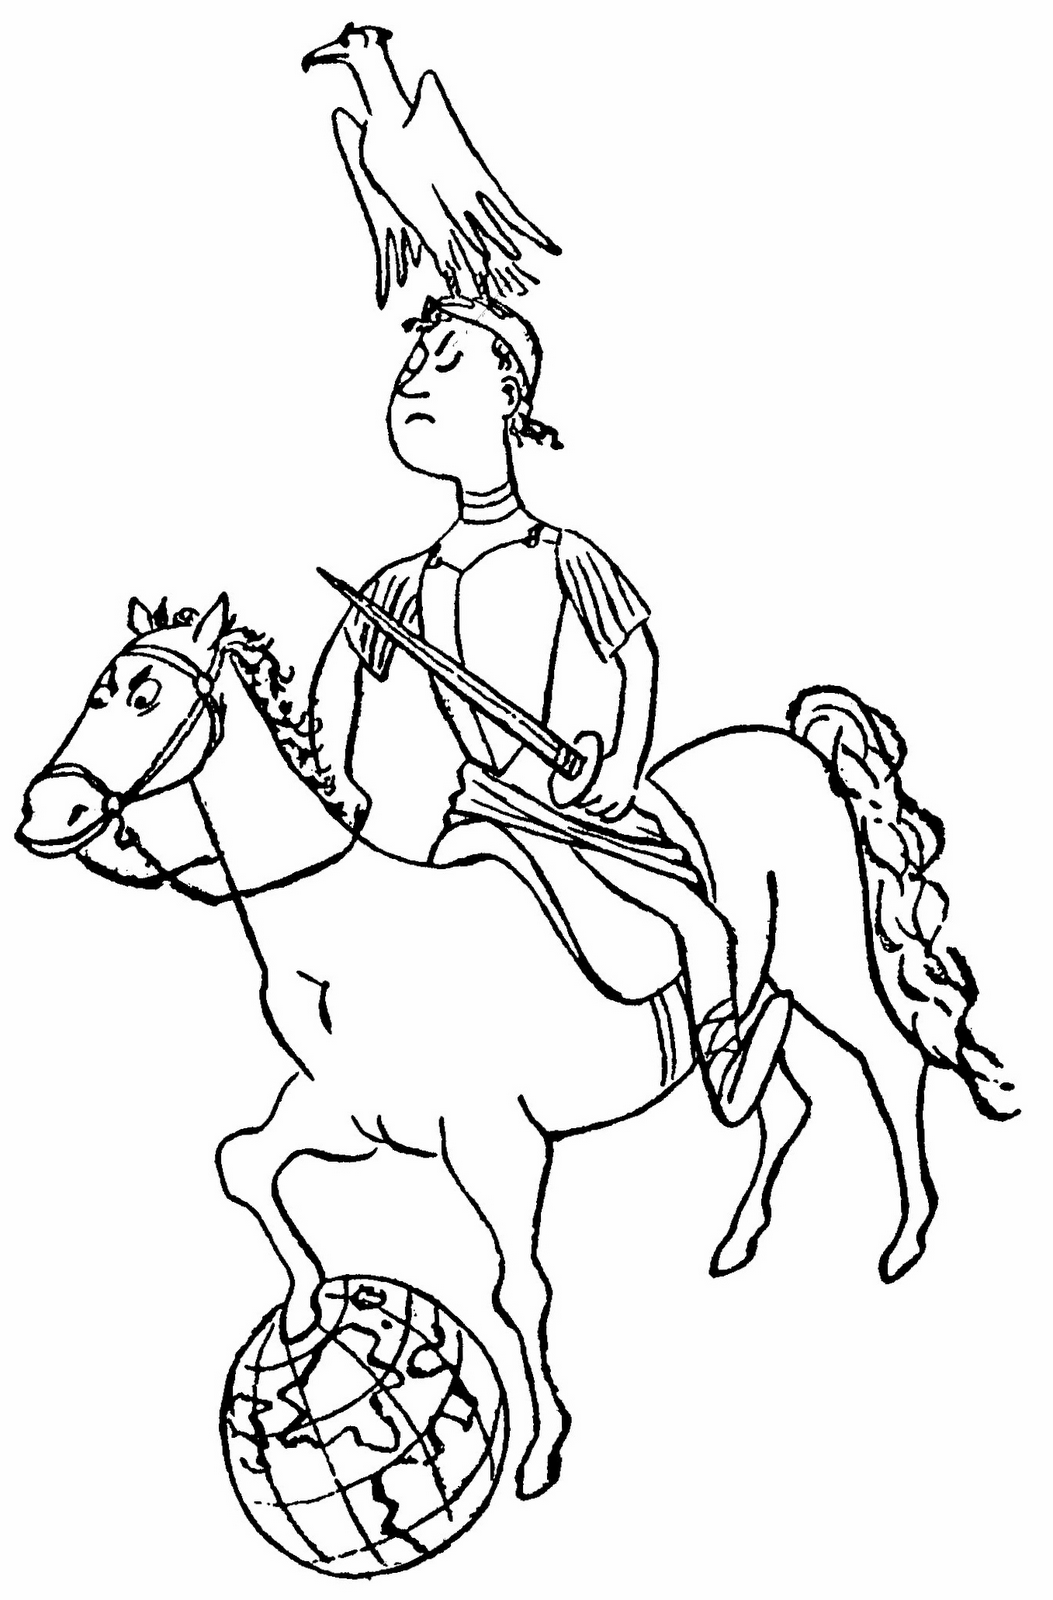 alexander the great coloring pages - photo#14